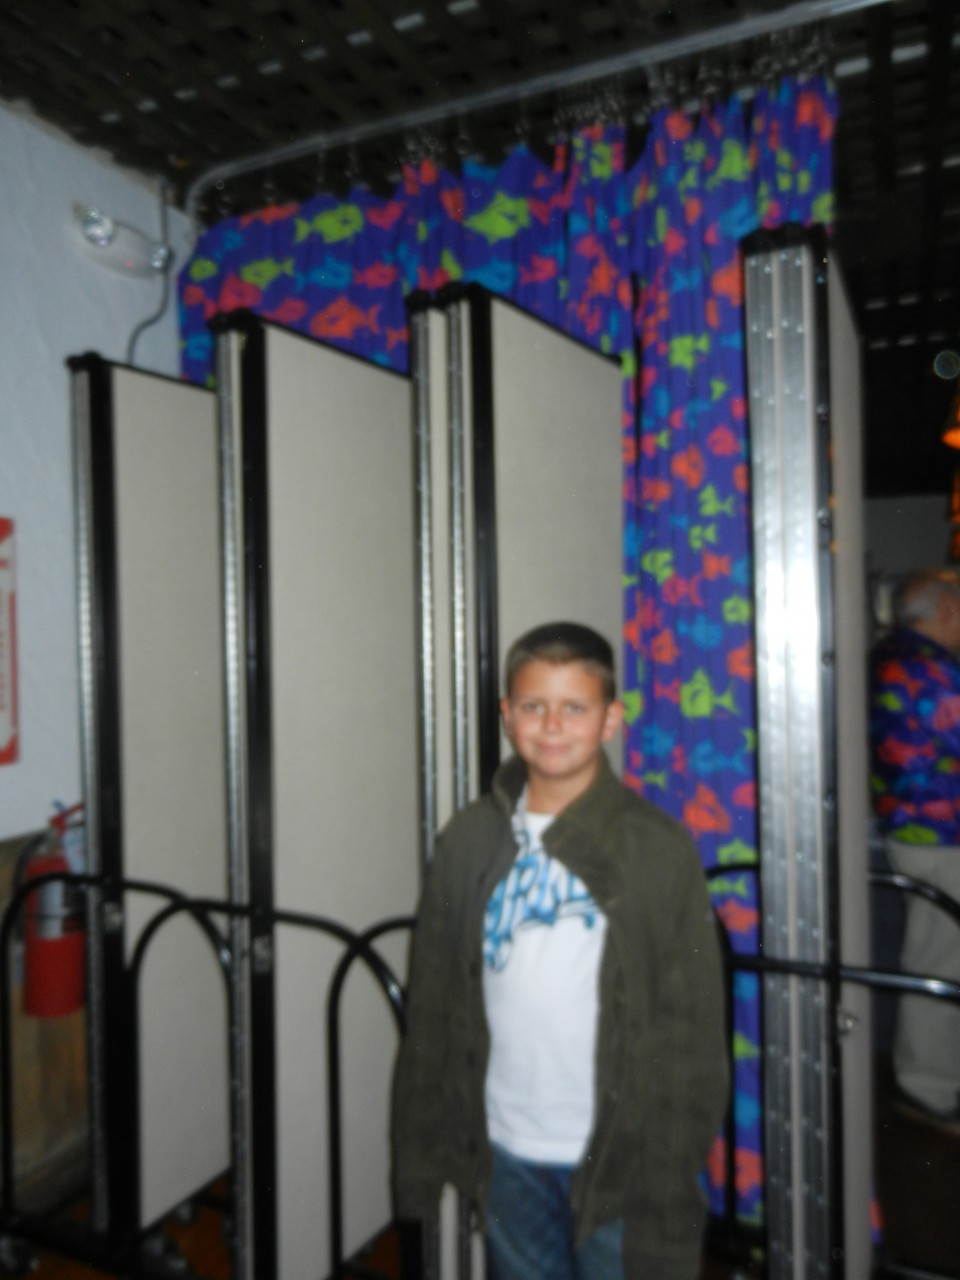 A teen boy stands in front of 4 closed room dividers